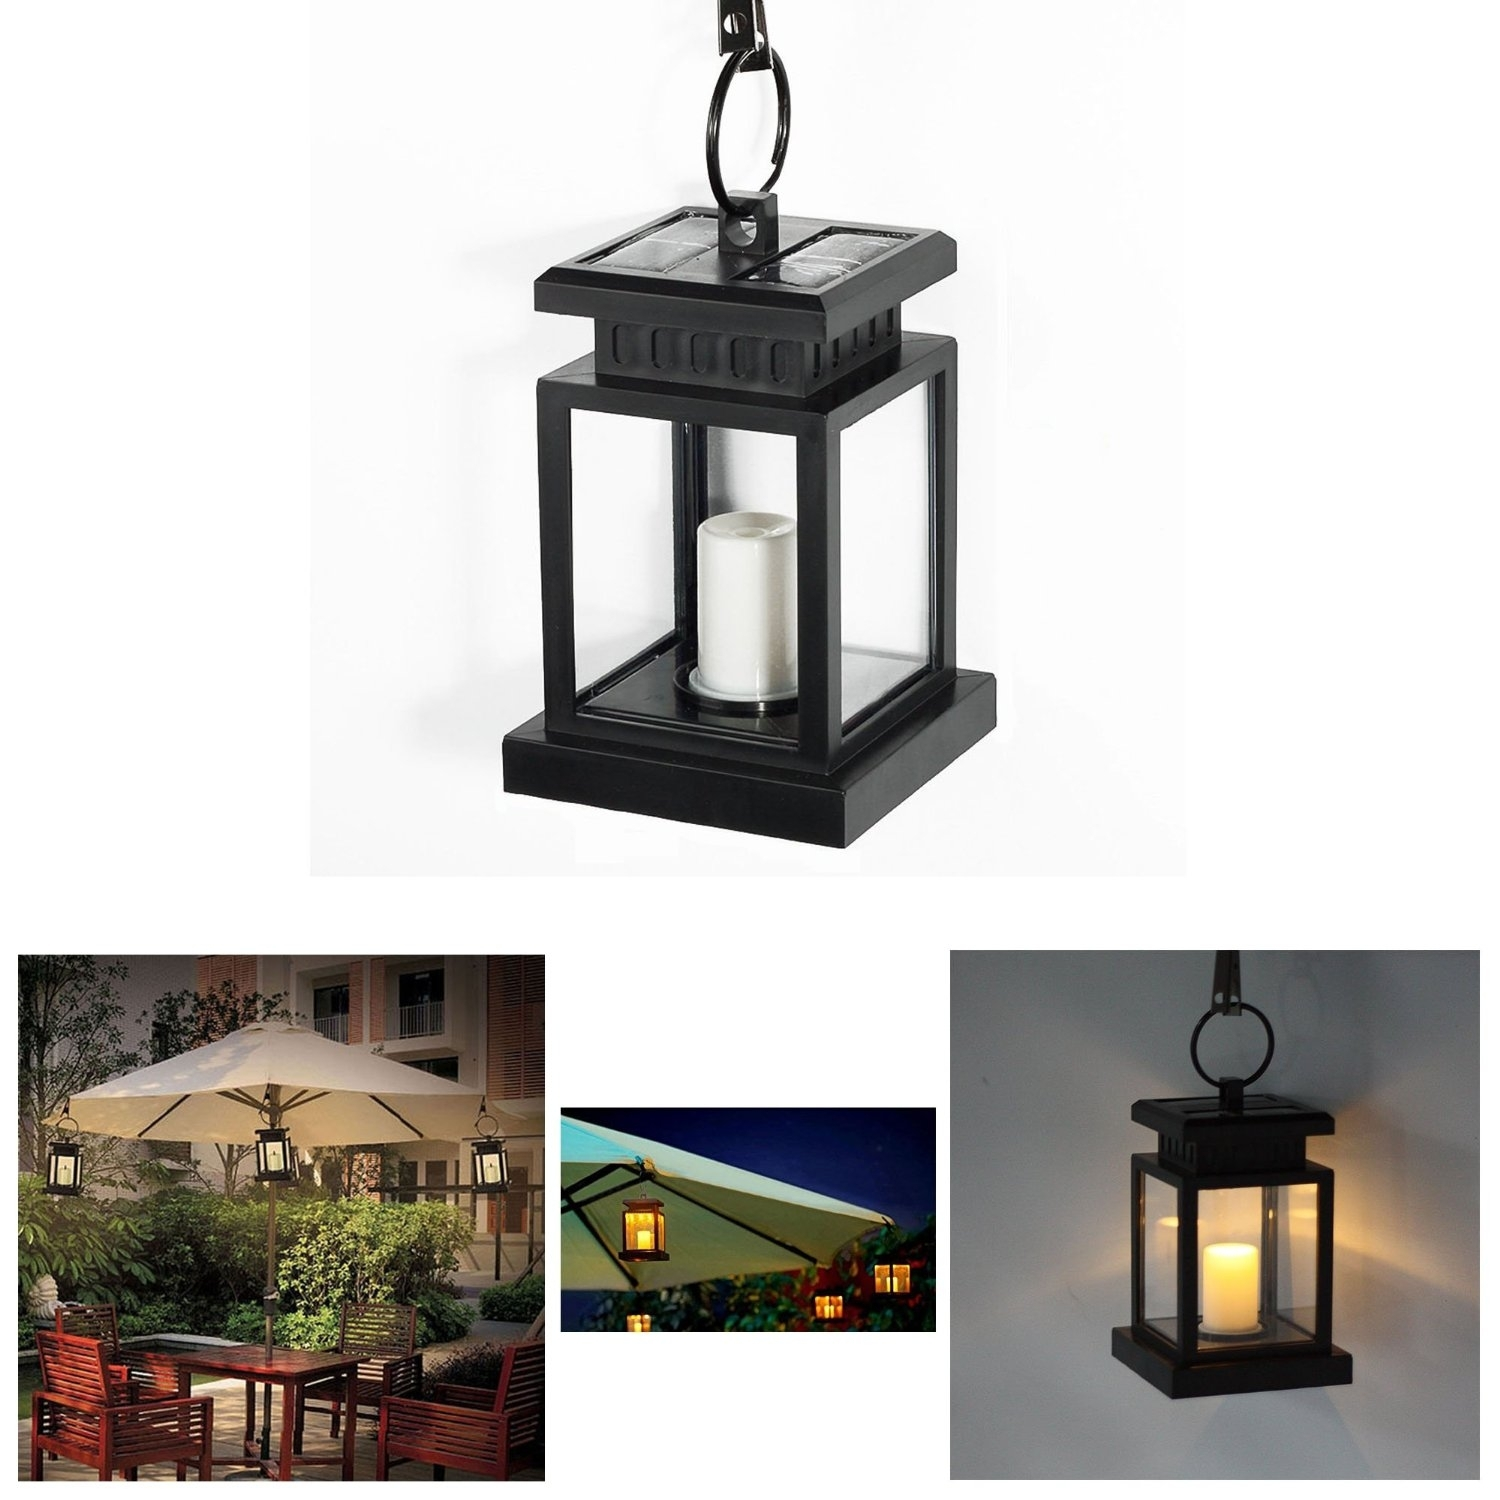 Solar Powered Hanging Umbrella Lantern Candle Led Light With Clamp For Outdoor Hanging Lanterns For Candles (#11 of 15)